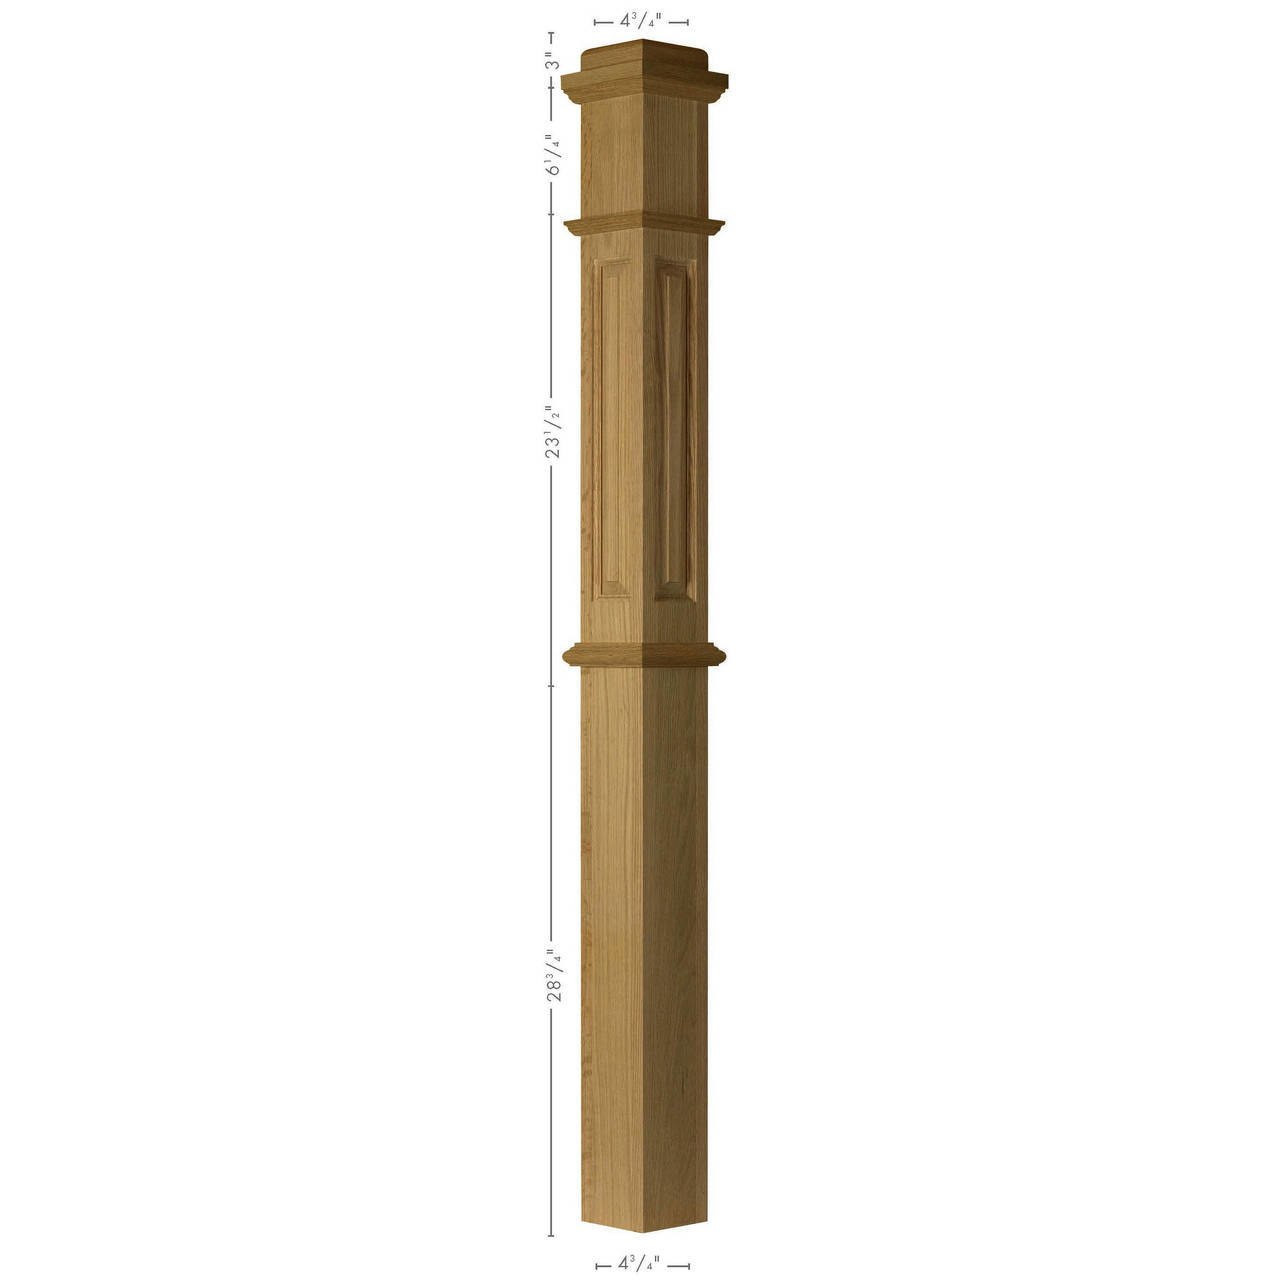 ARP-4375 Hard Maple, Cherry or Hickory Actual Paneled Box Newel Post (2)